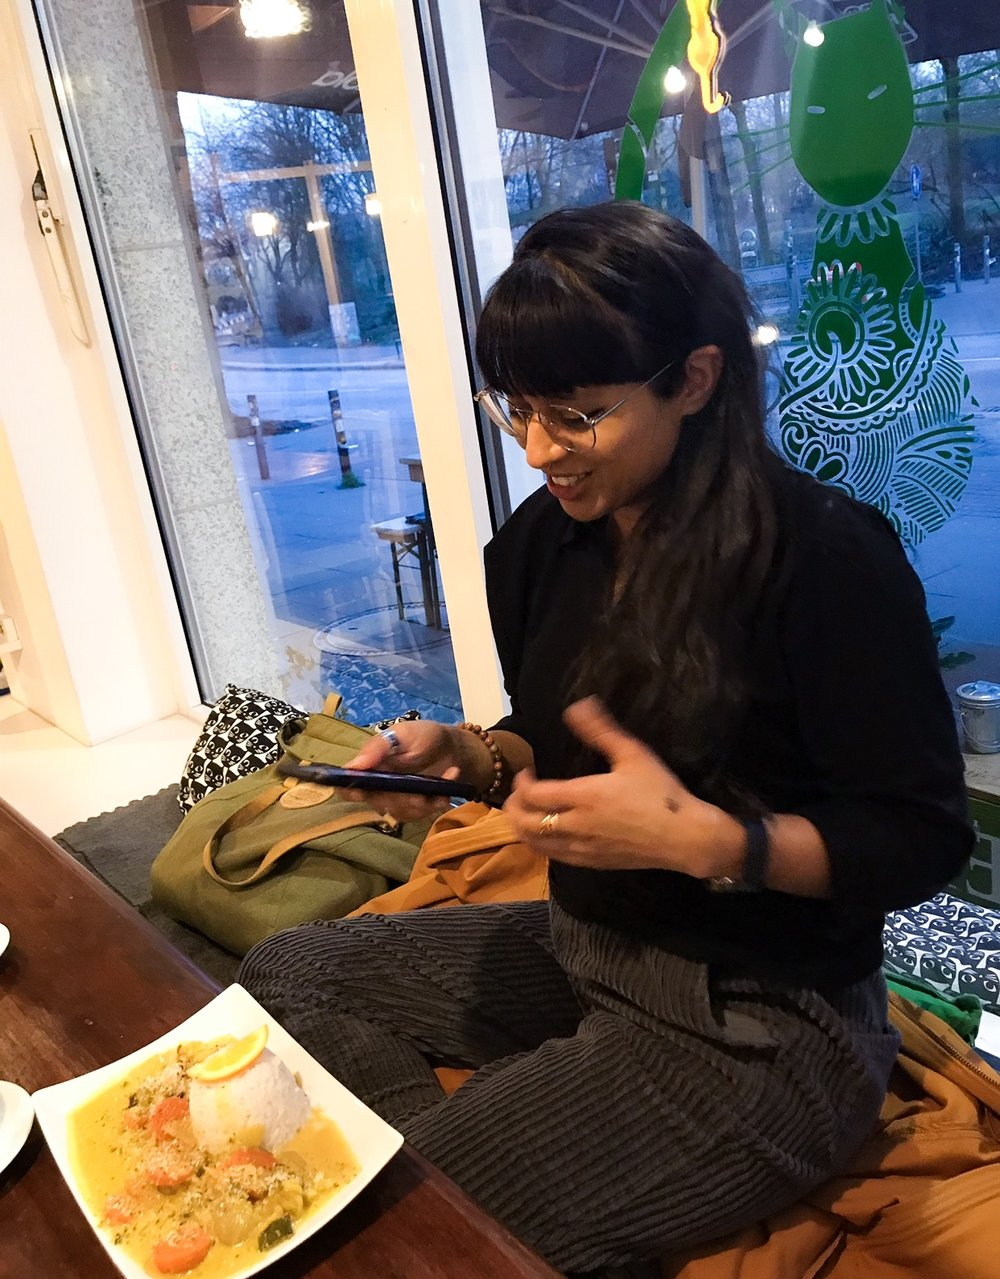 Back at the Cat Cafe with Tanya planning our workshop together (our second home).